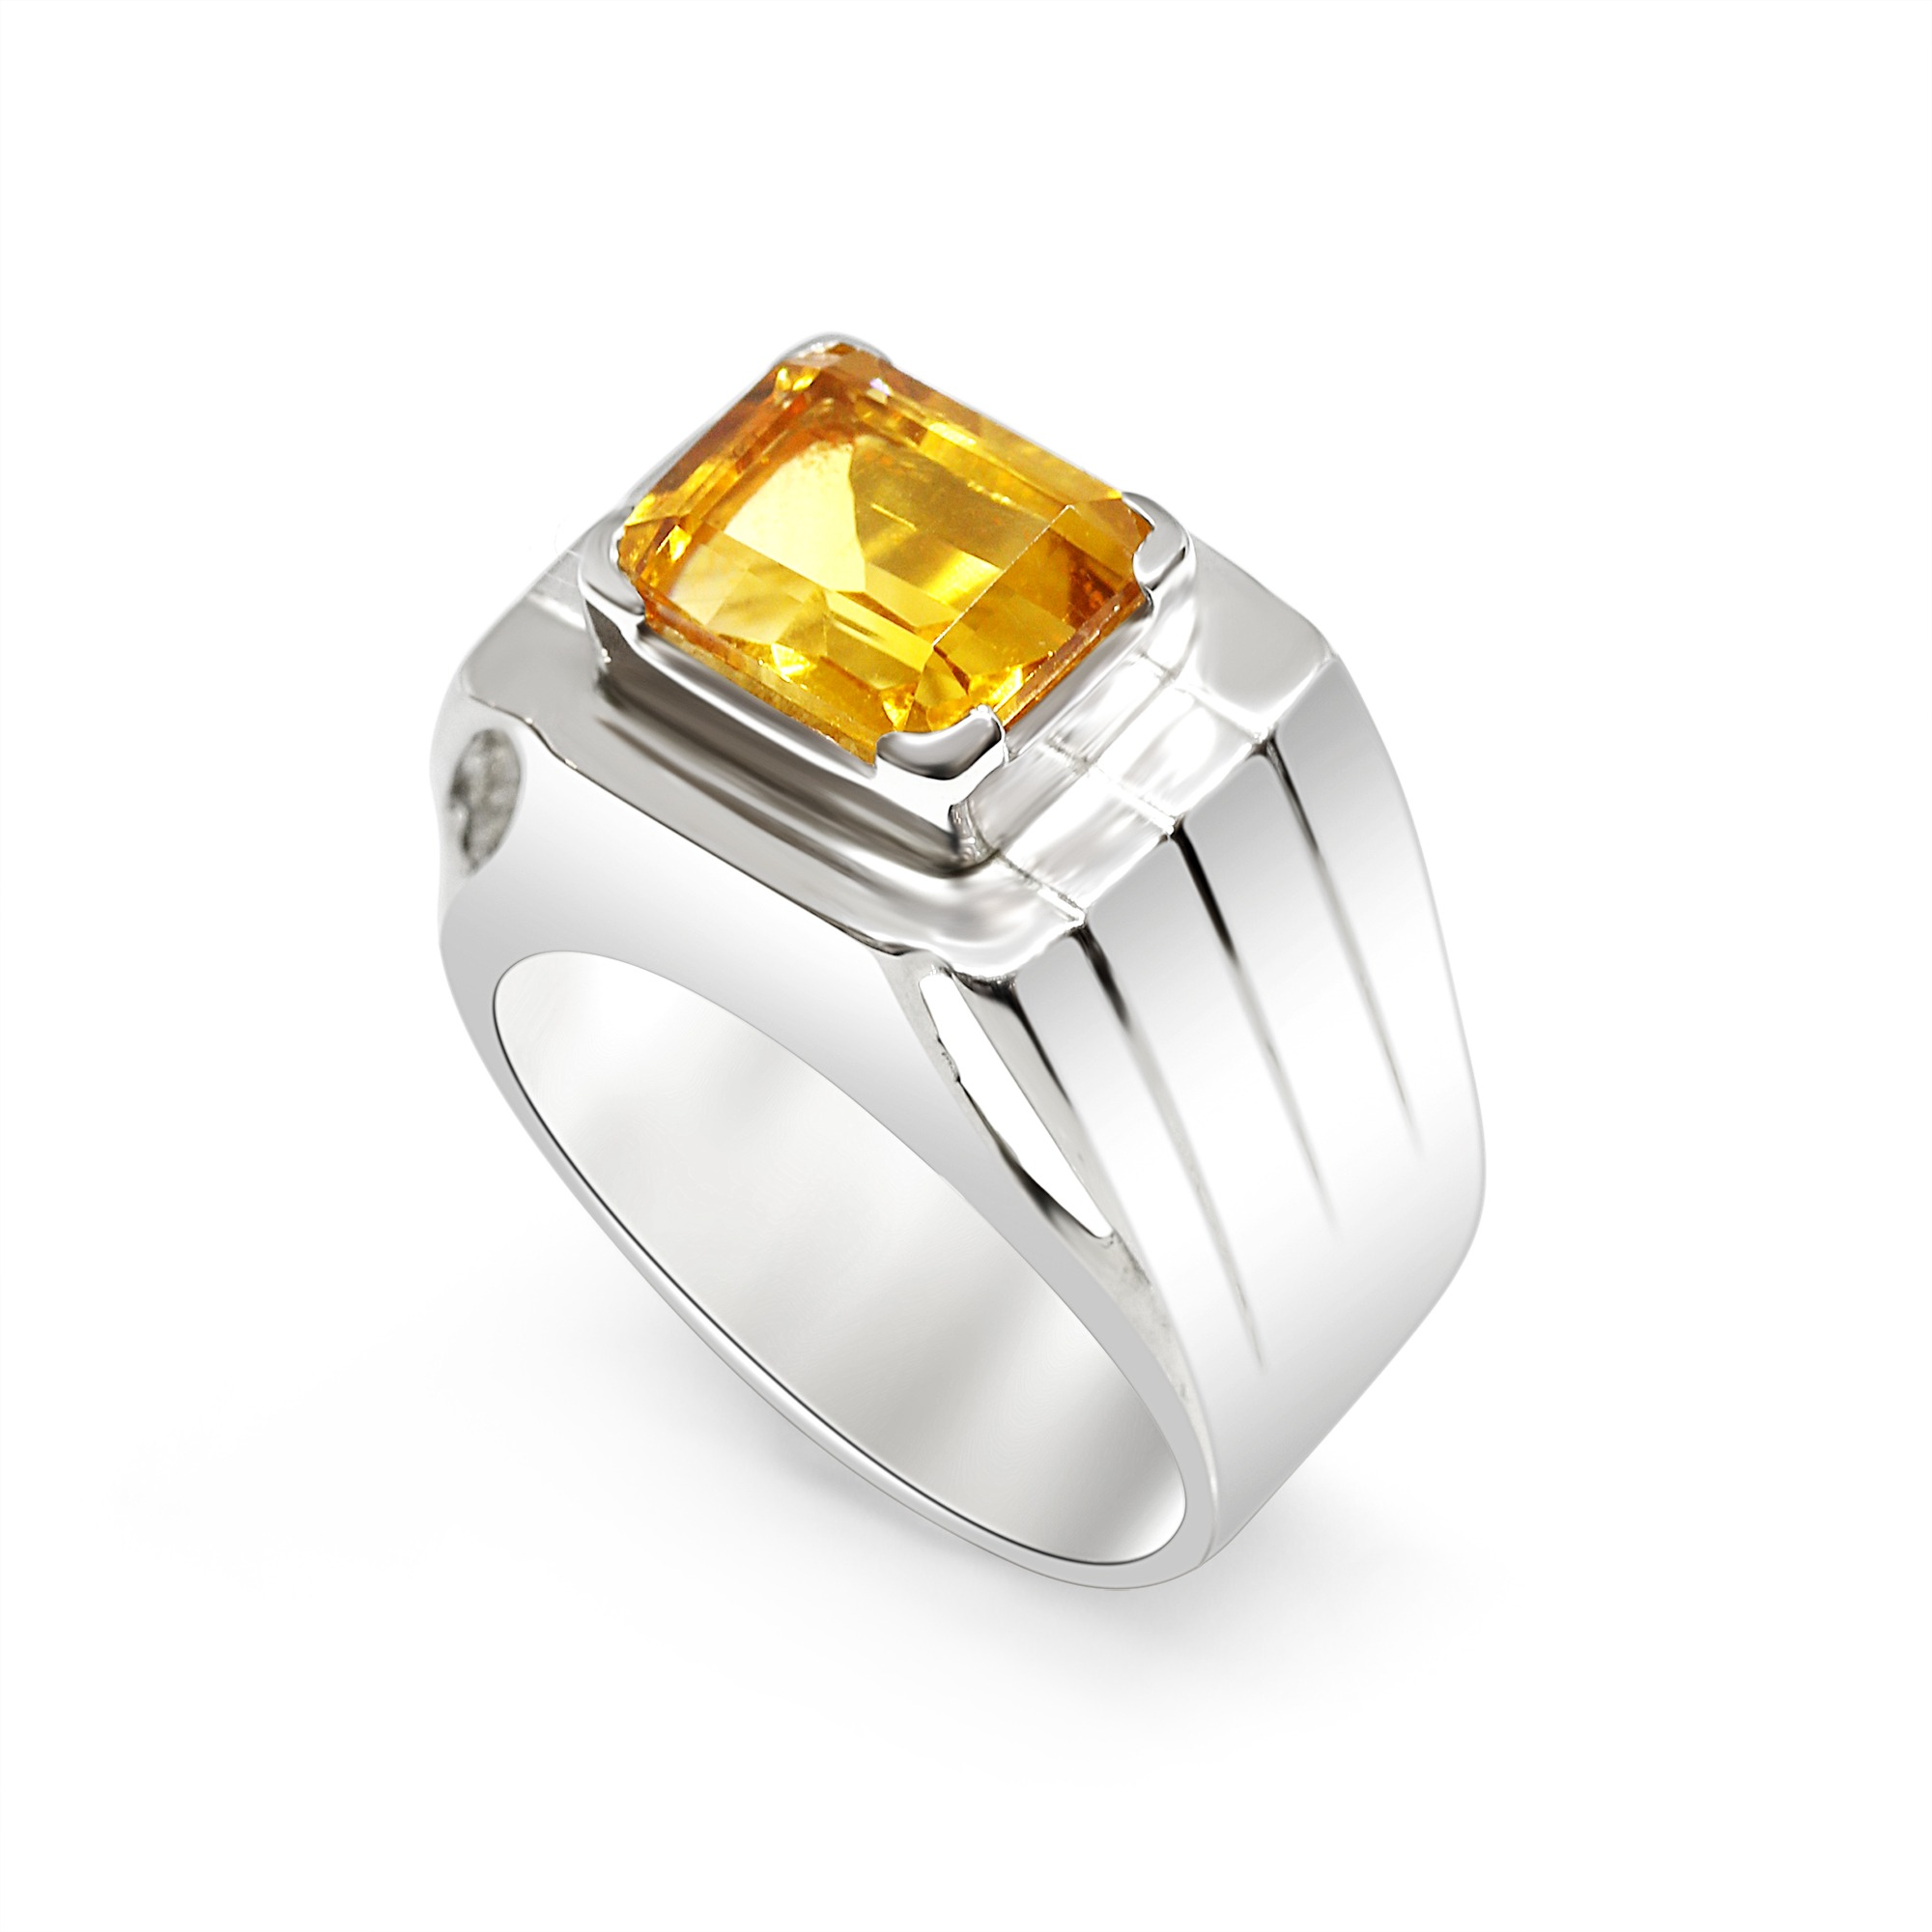 Brandy Citrine Ring